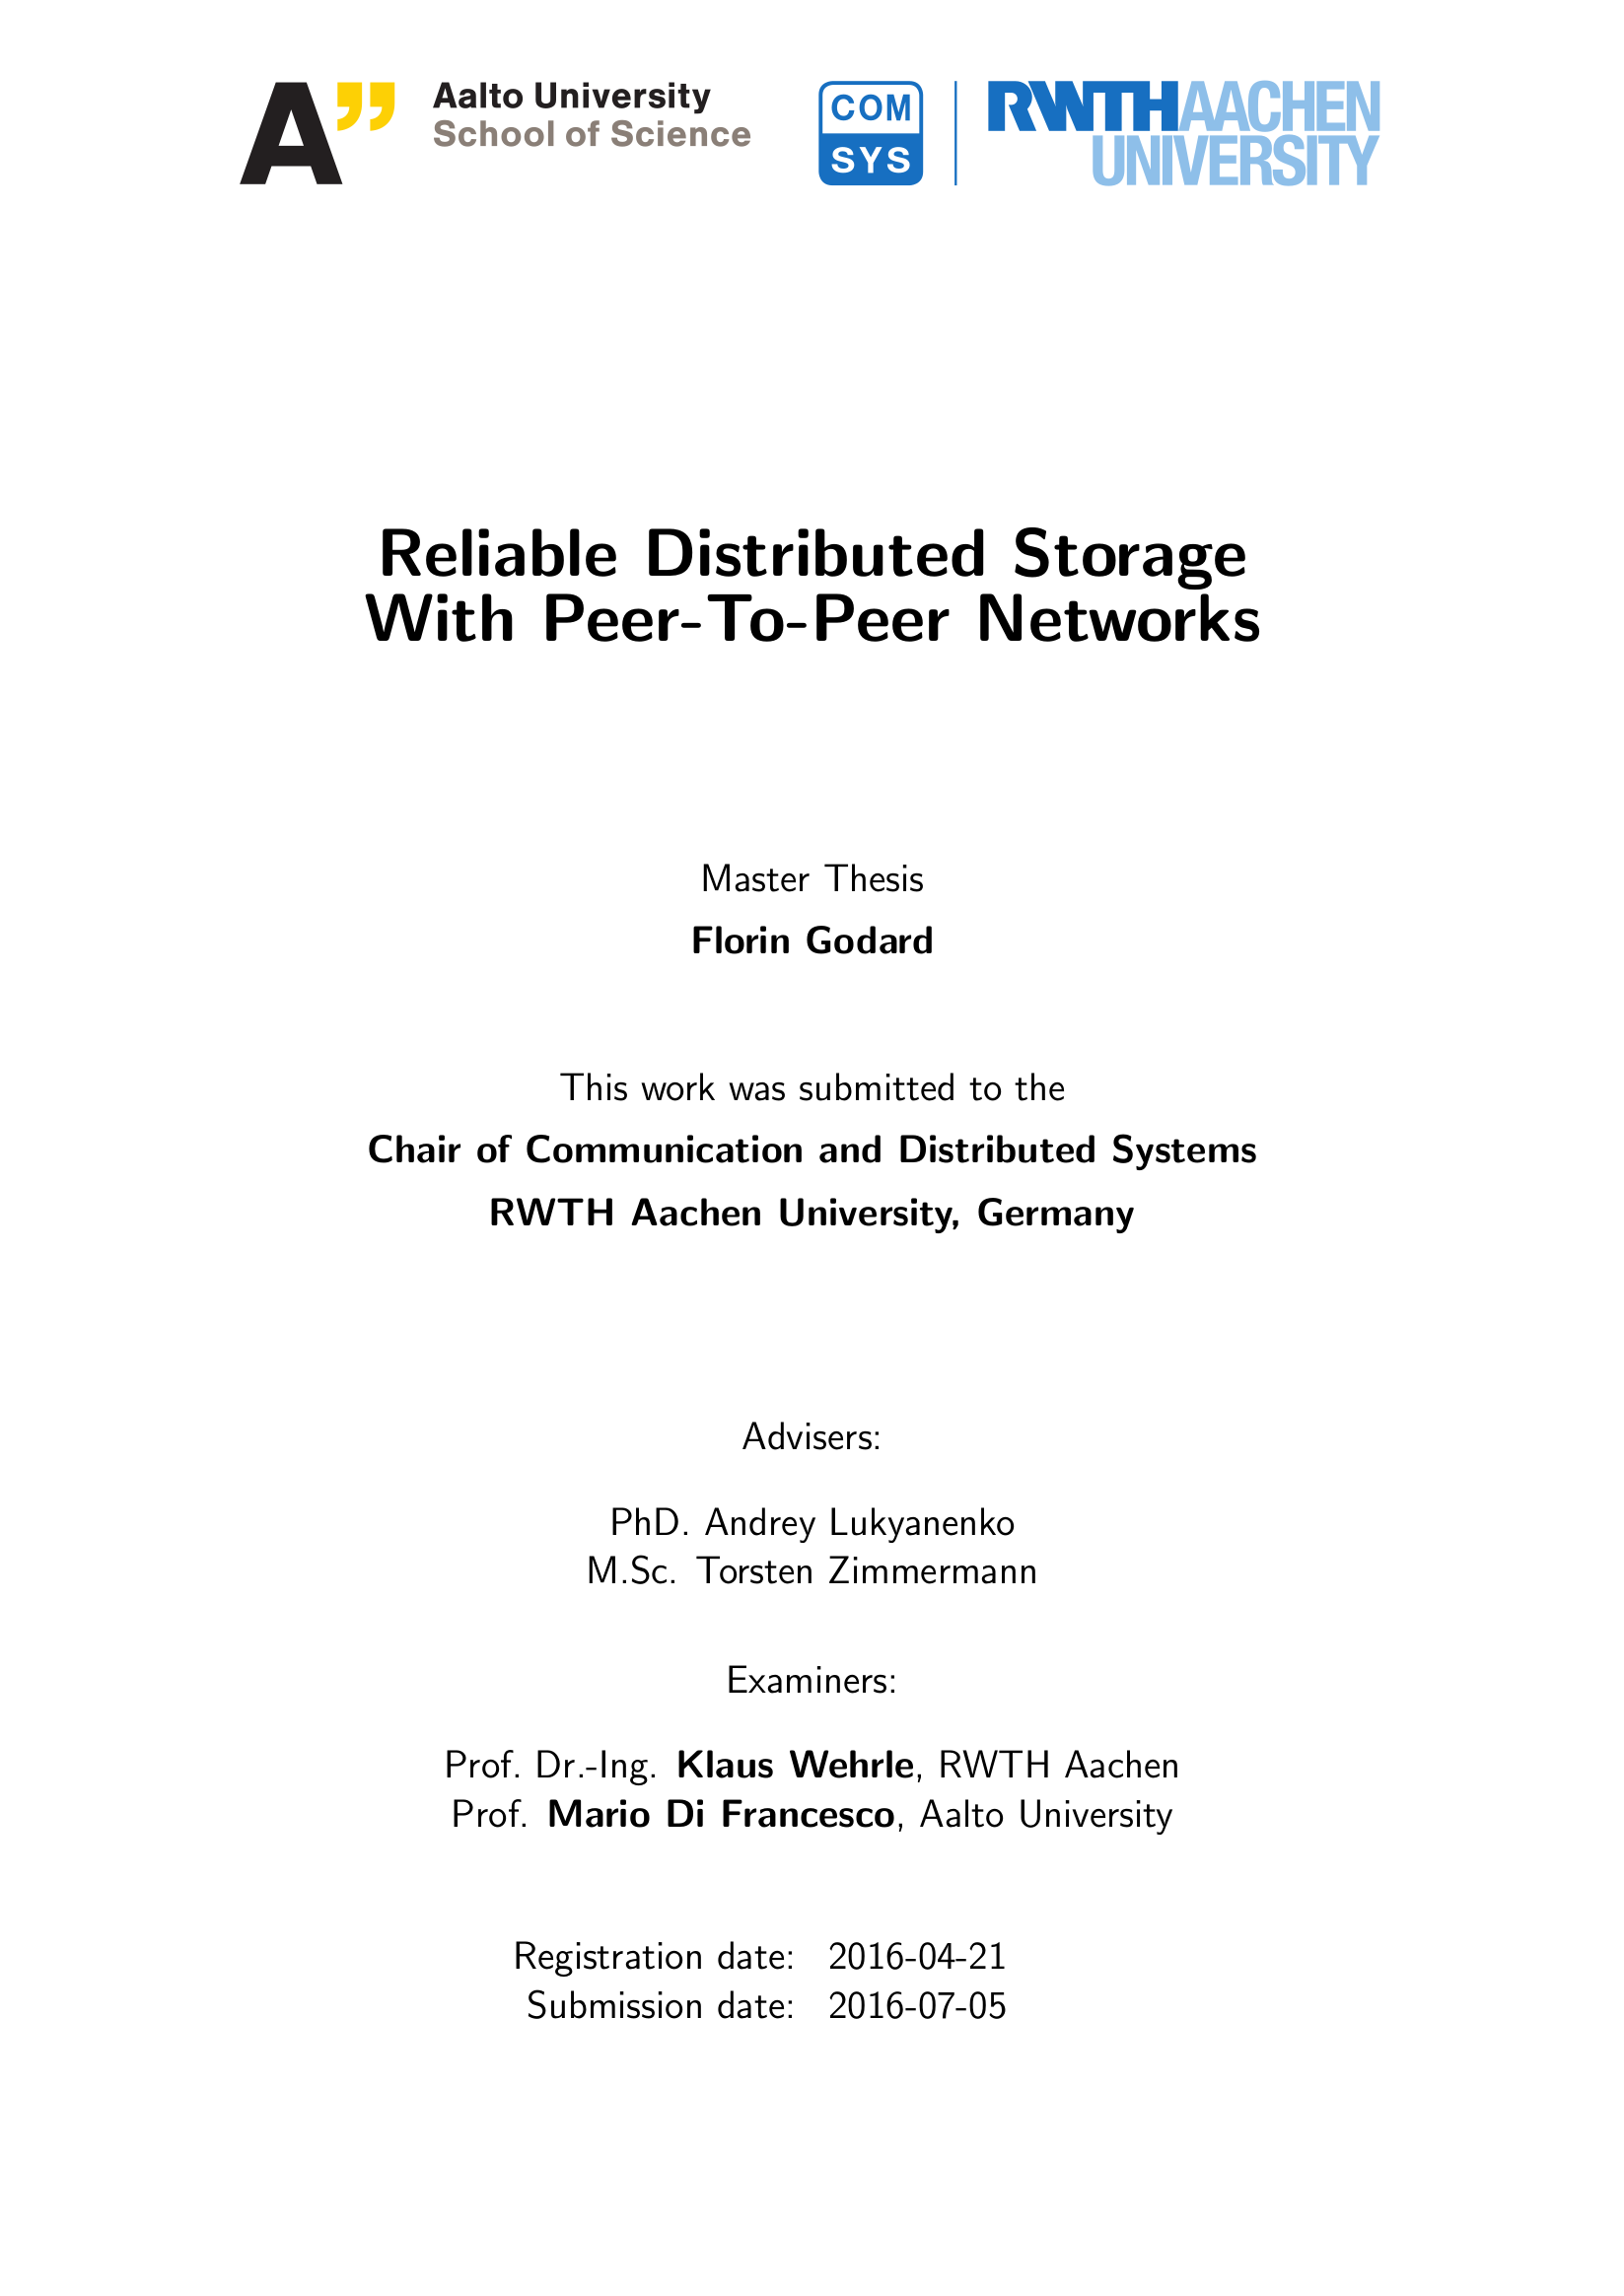 Masters thesis on php and mysql